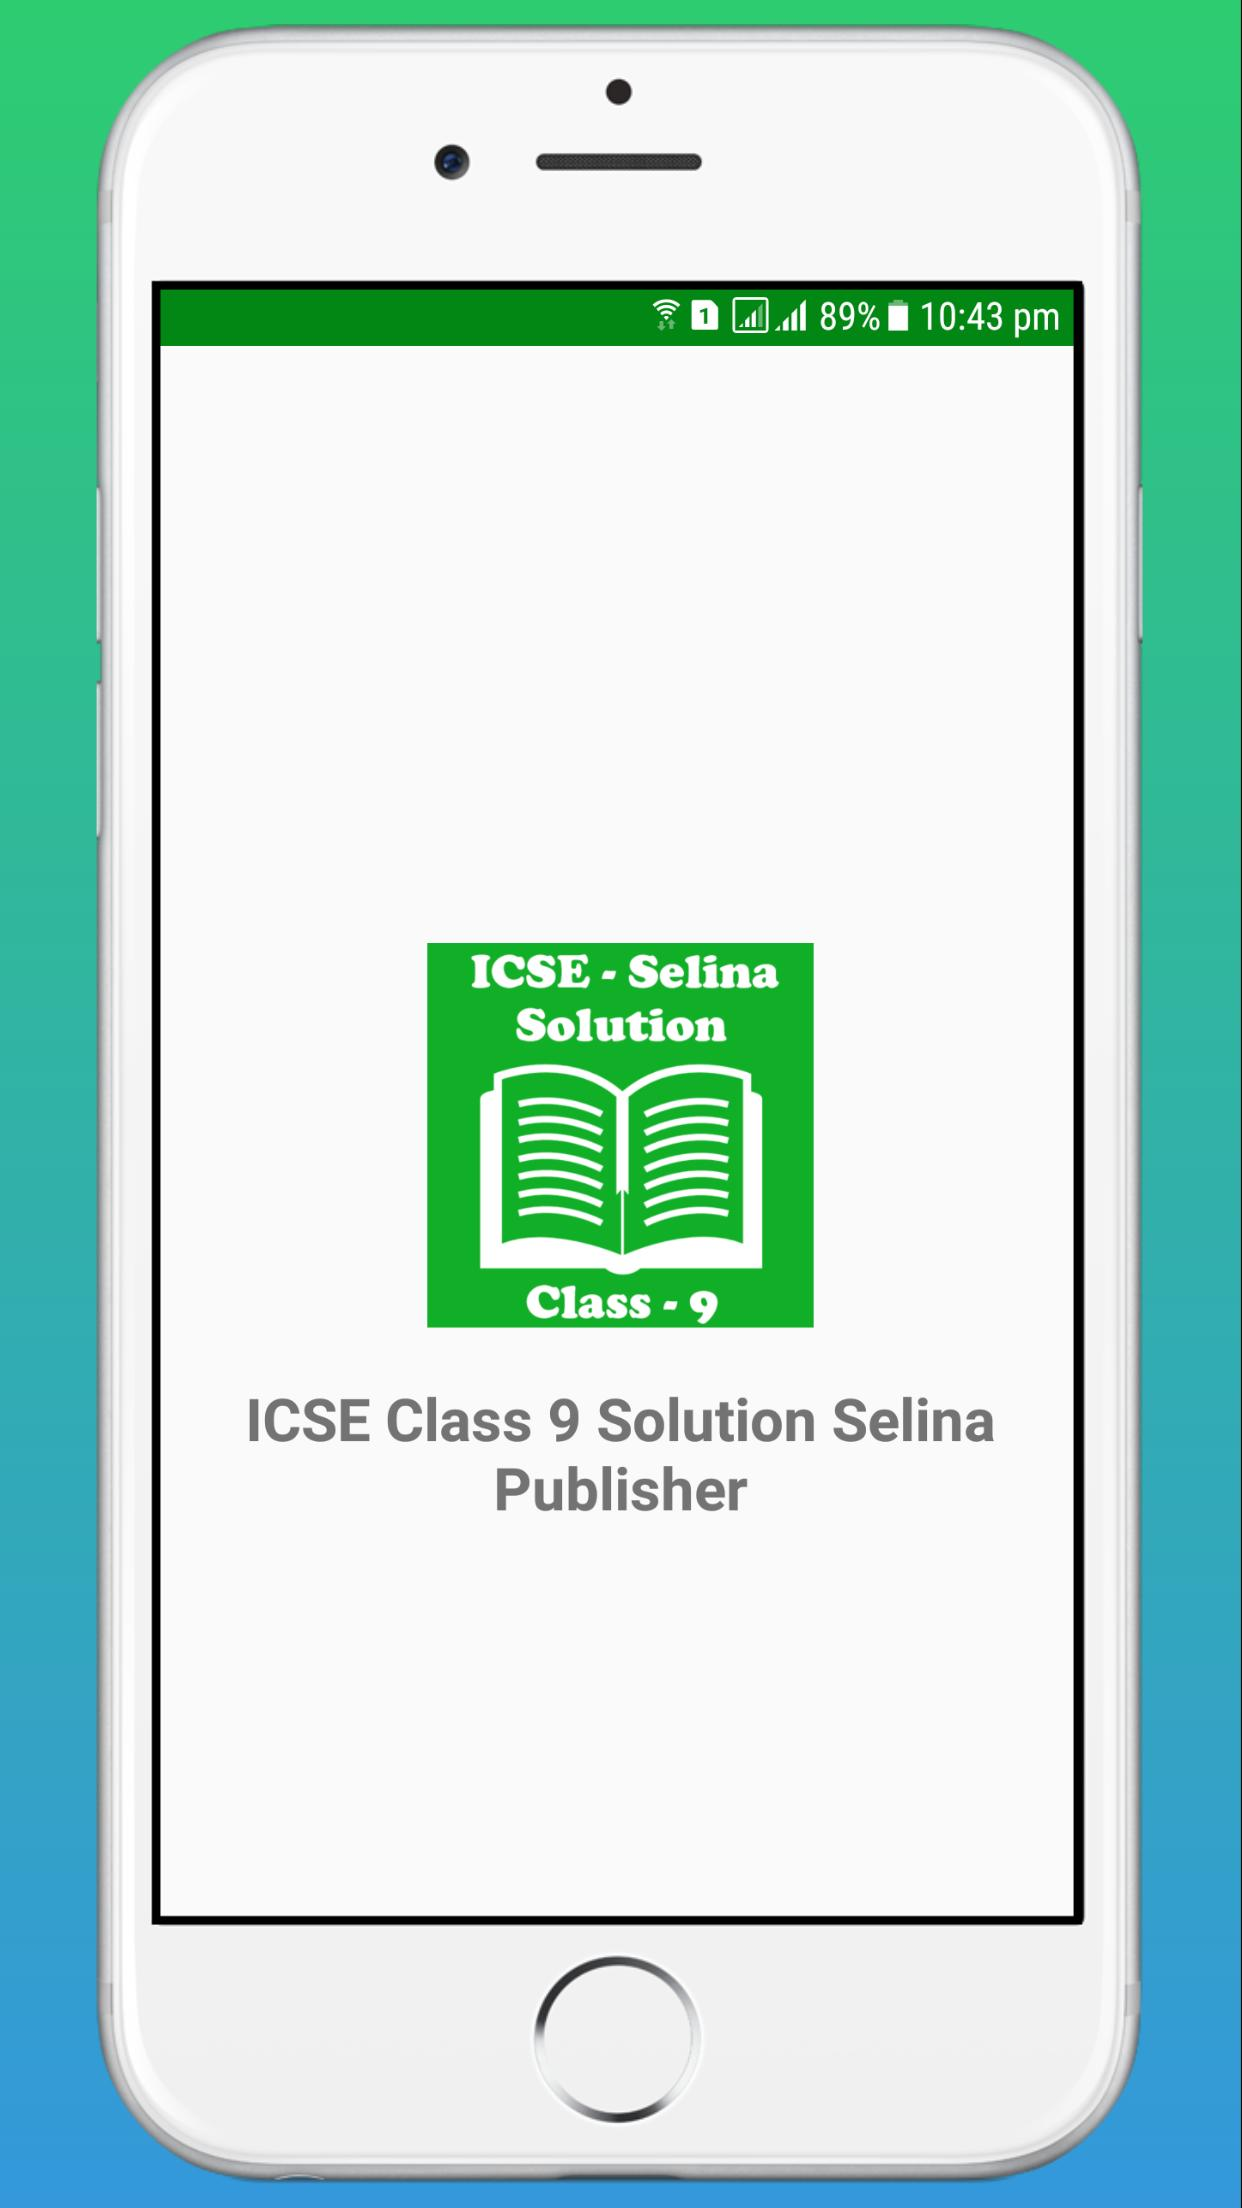 ICSE Class 9 Selina Book Solution for Android - APK Download